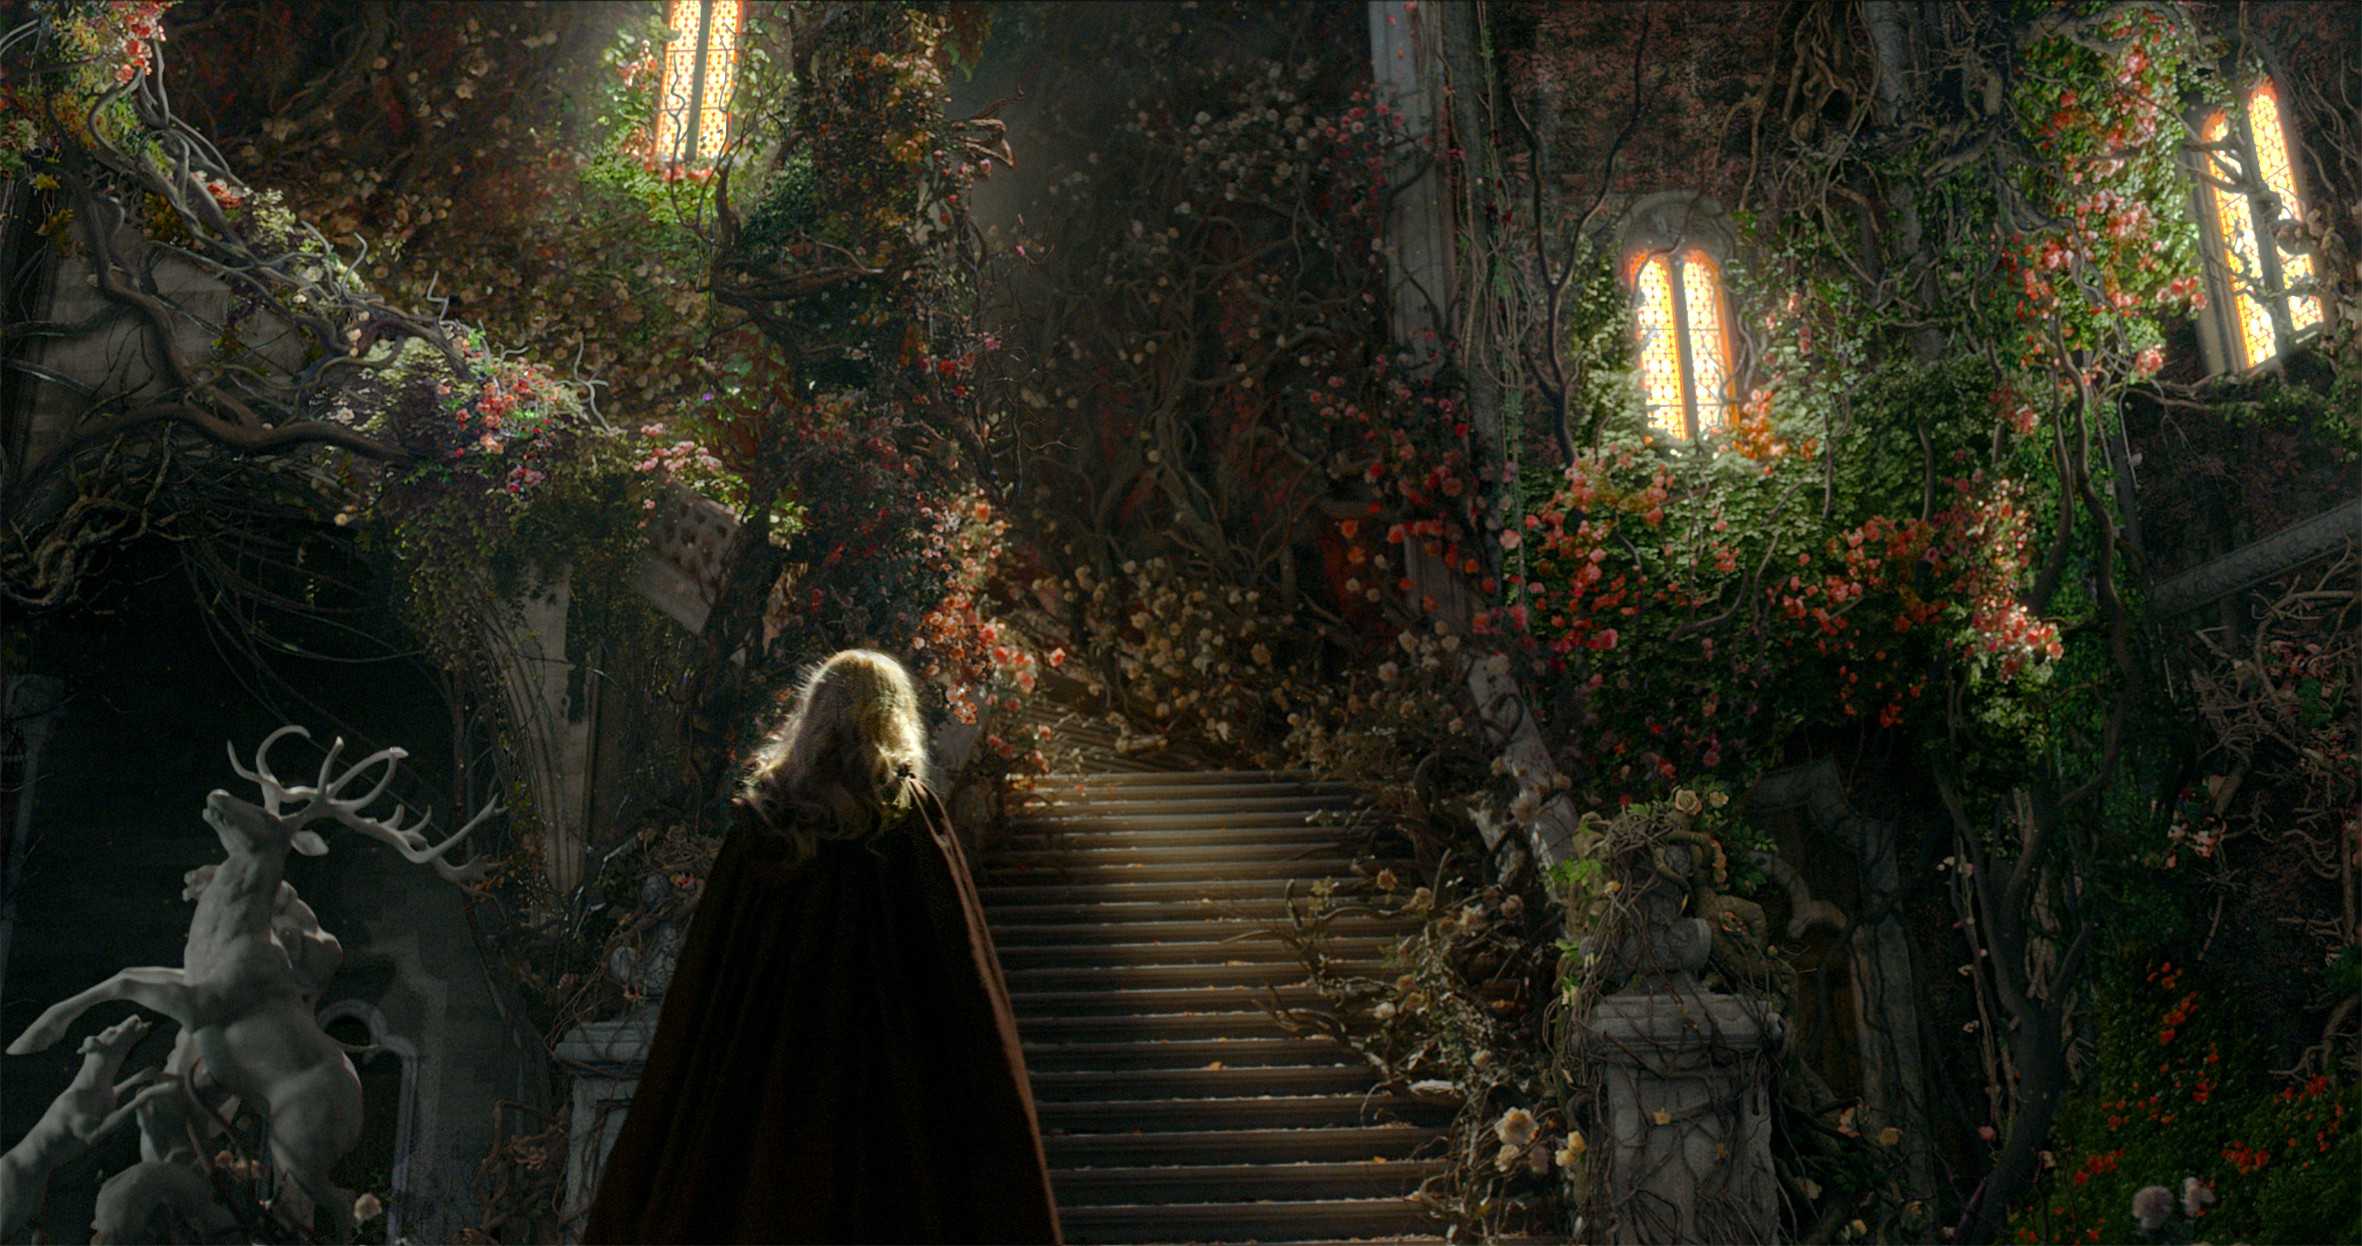 la belle et la b ecirc te beauty and the beast from the flowersstairs